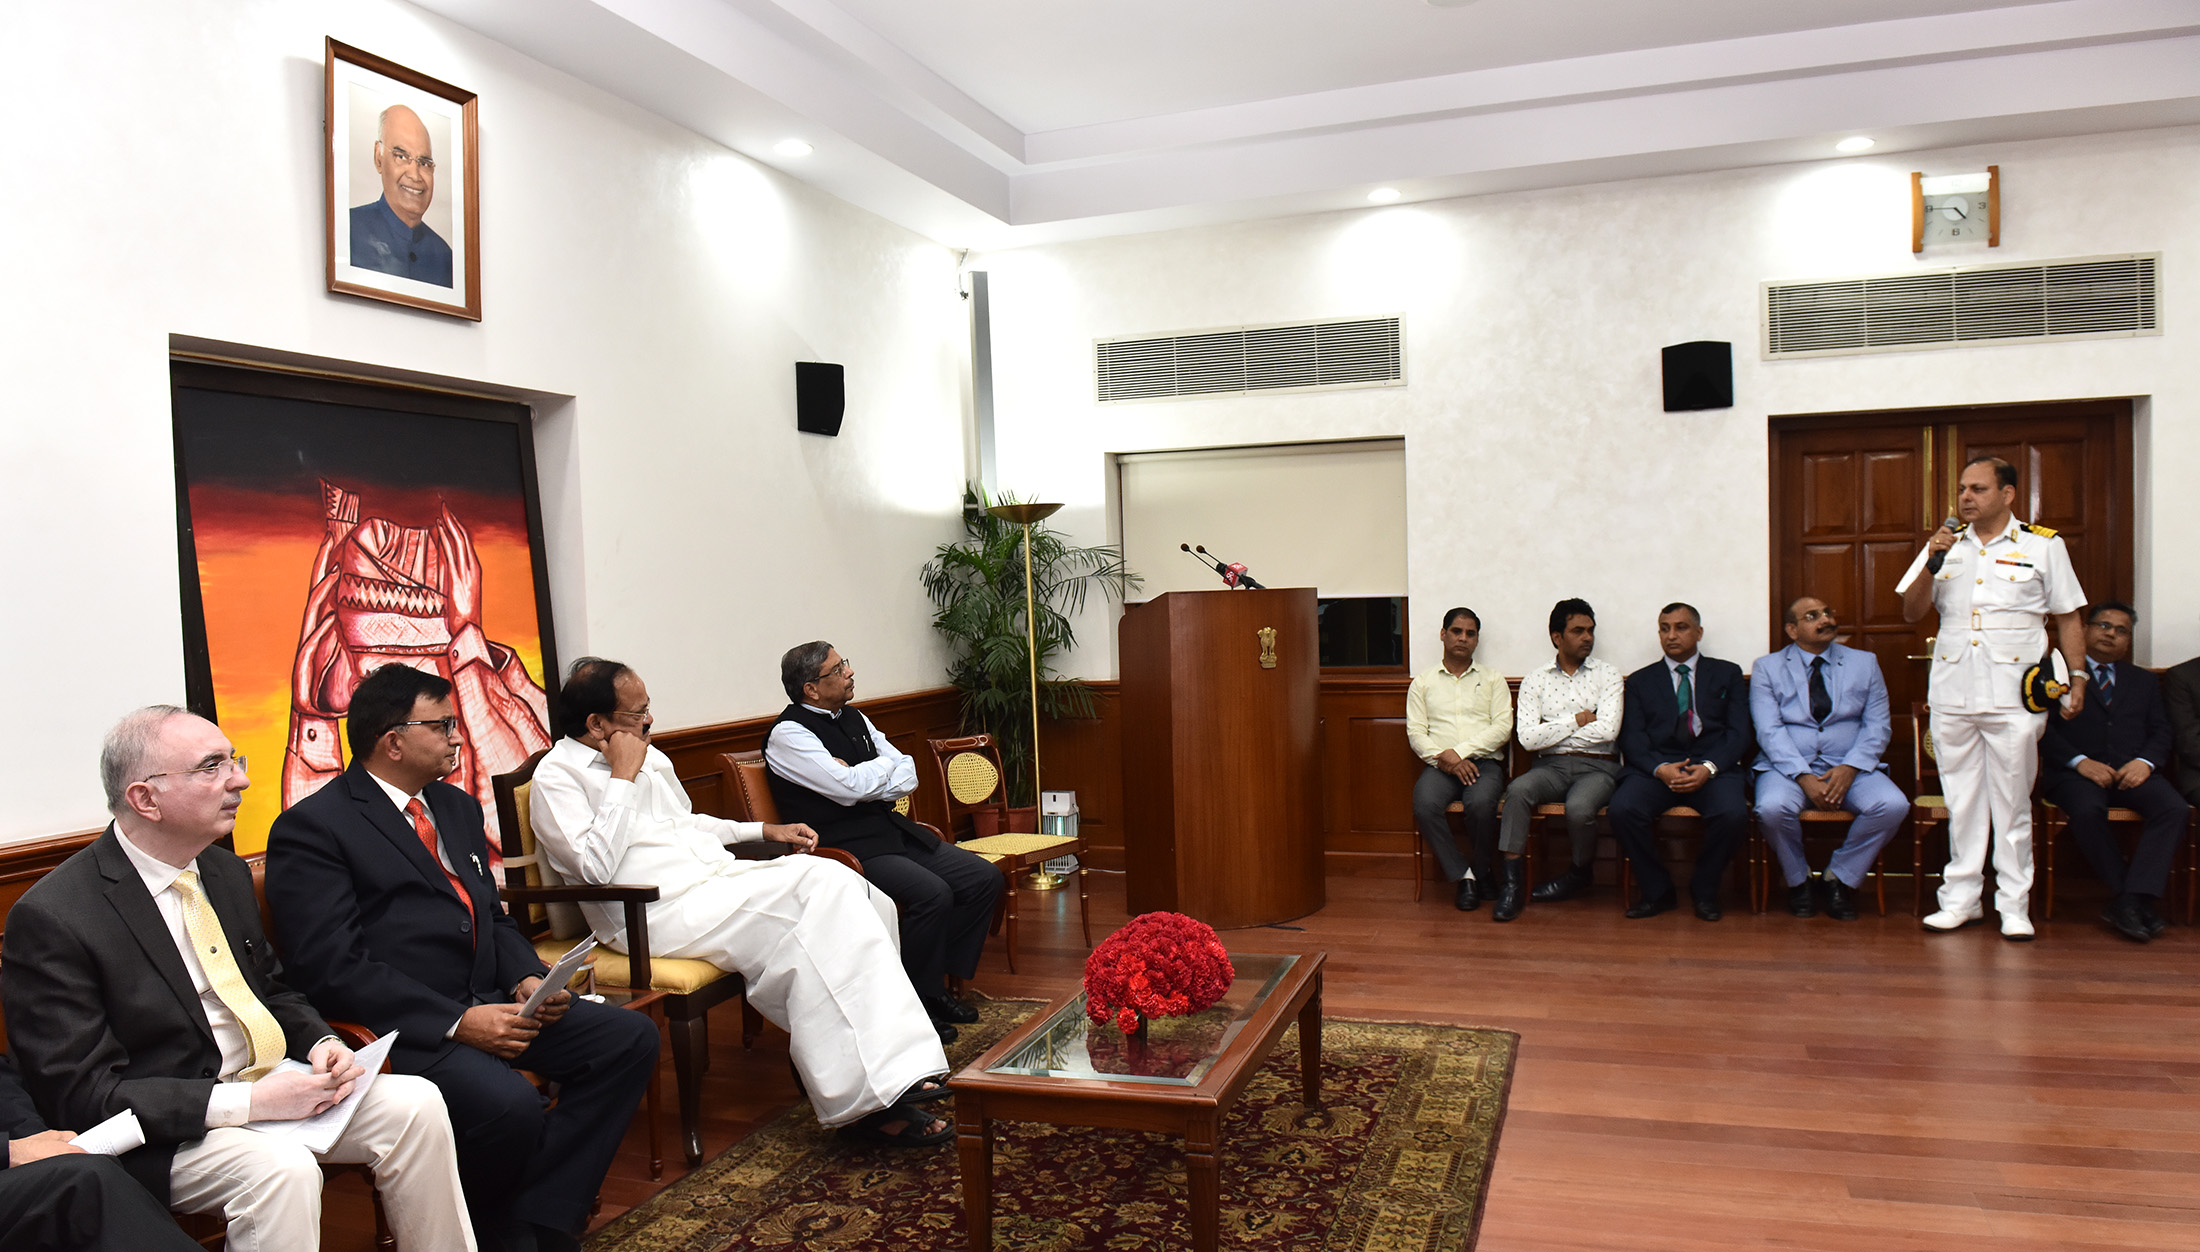 The Vice President, Shri M. Venkaiah Naidu interacting with the 44th batch of Advance Professional Programme in Public Administration, sponsored by the Indian Institute of Public Administration, in New Delhi on April 15, 2019.